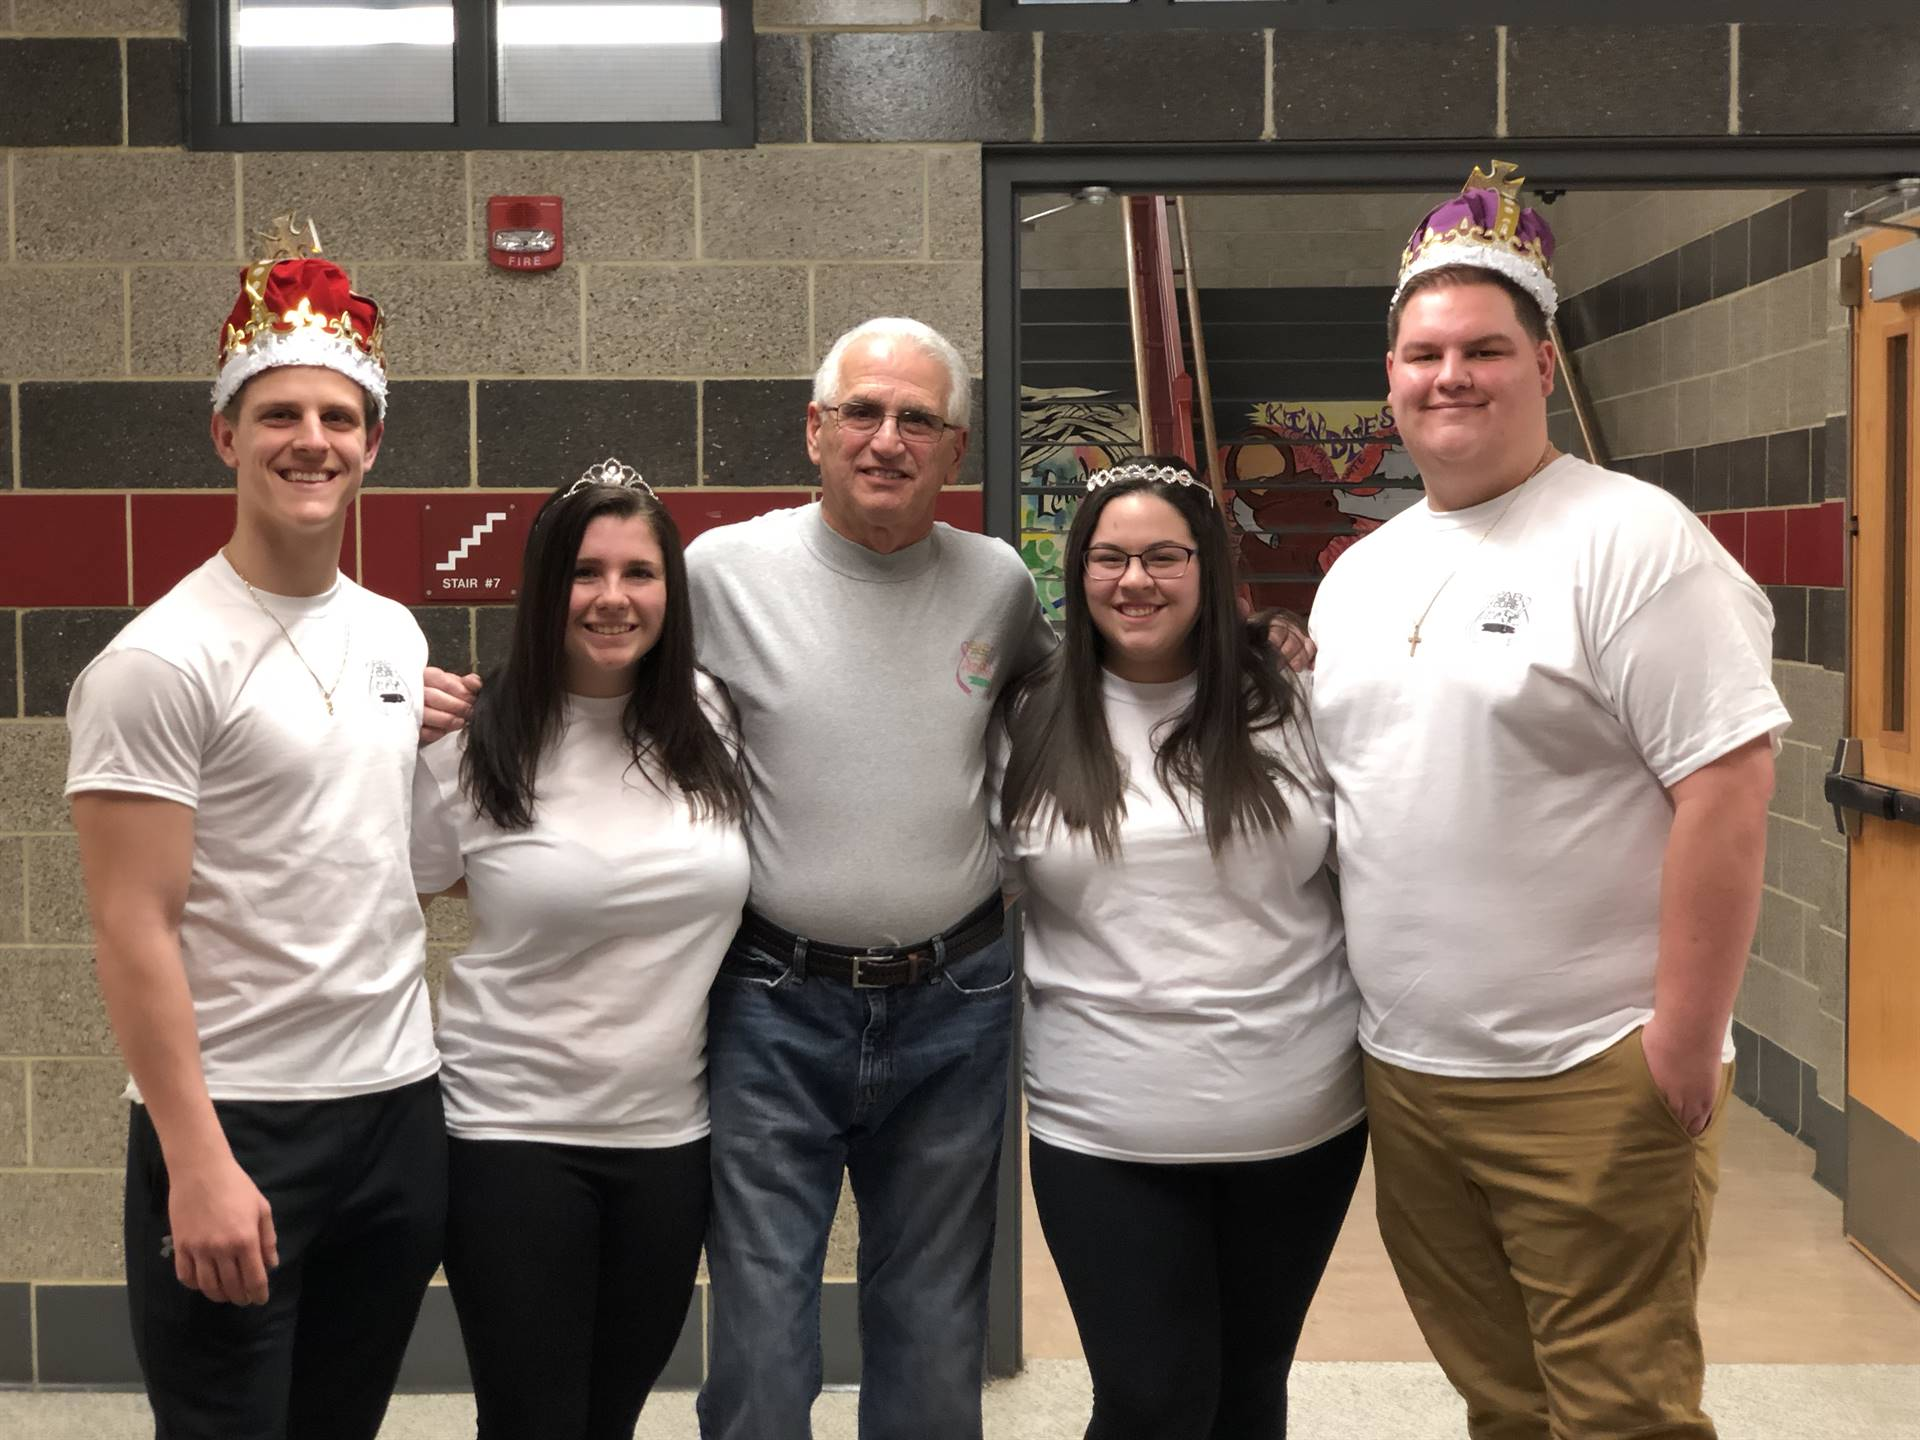 Mr. Andy Esposito poses with the 2018 King, Queen, Prince, and Princess of Hearts